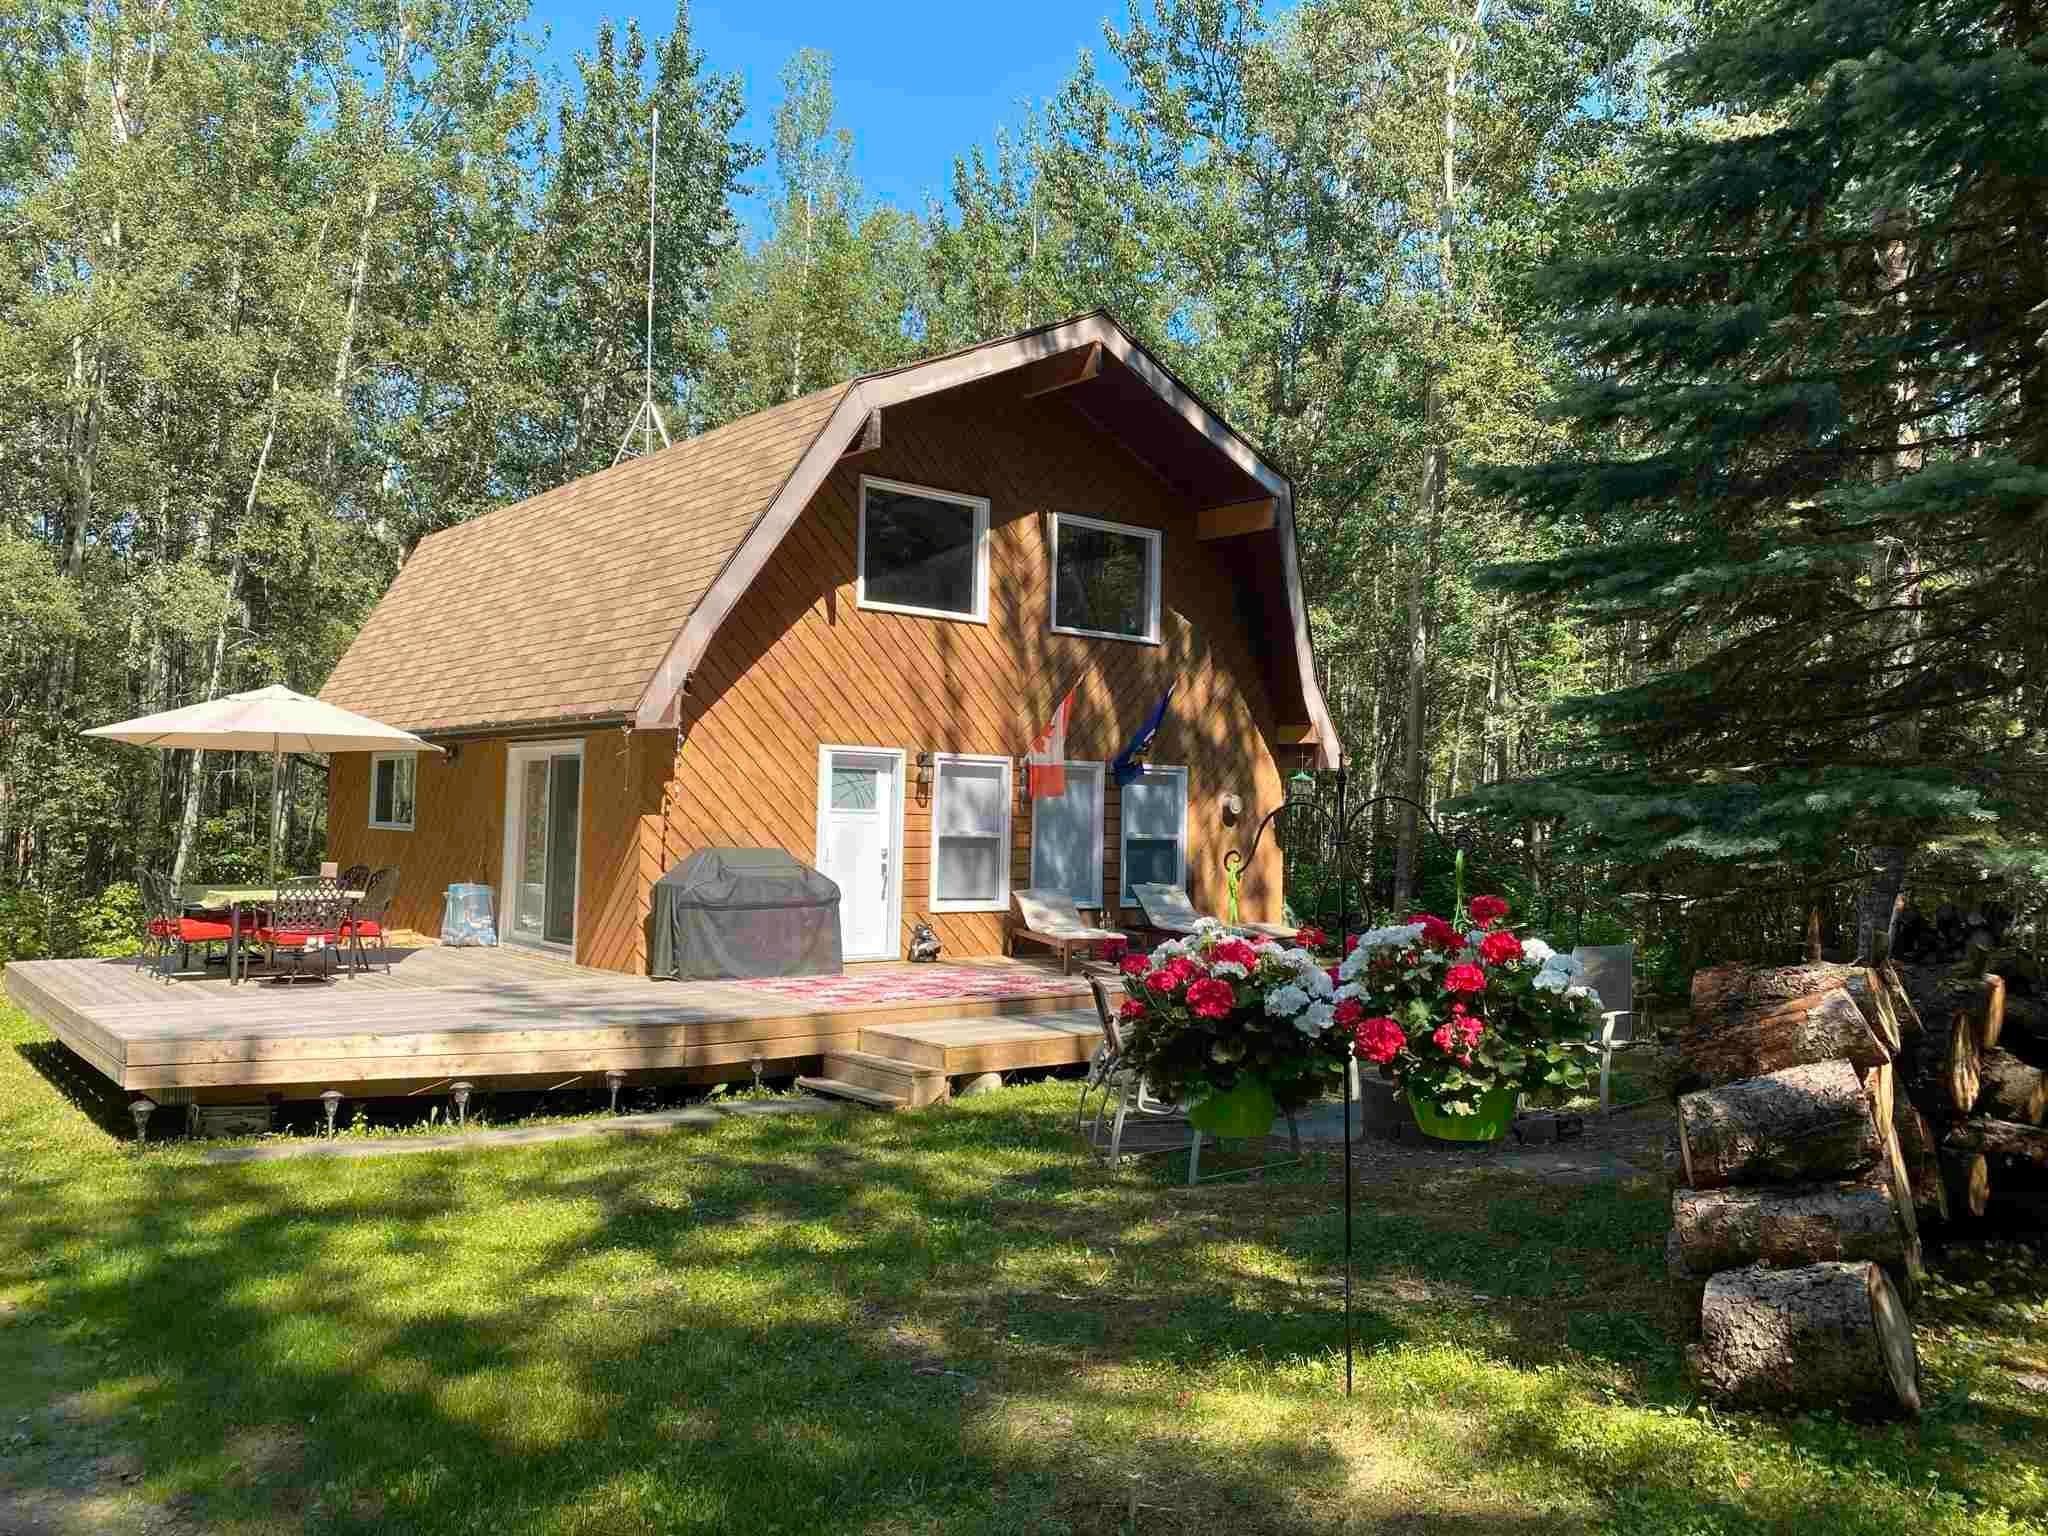 Main Photo: 18 463017 RGE RD 12: Rural Wetaskiwin County House for sale : MLS®# E4252622